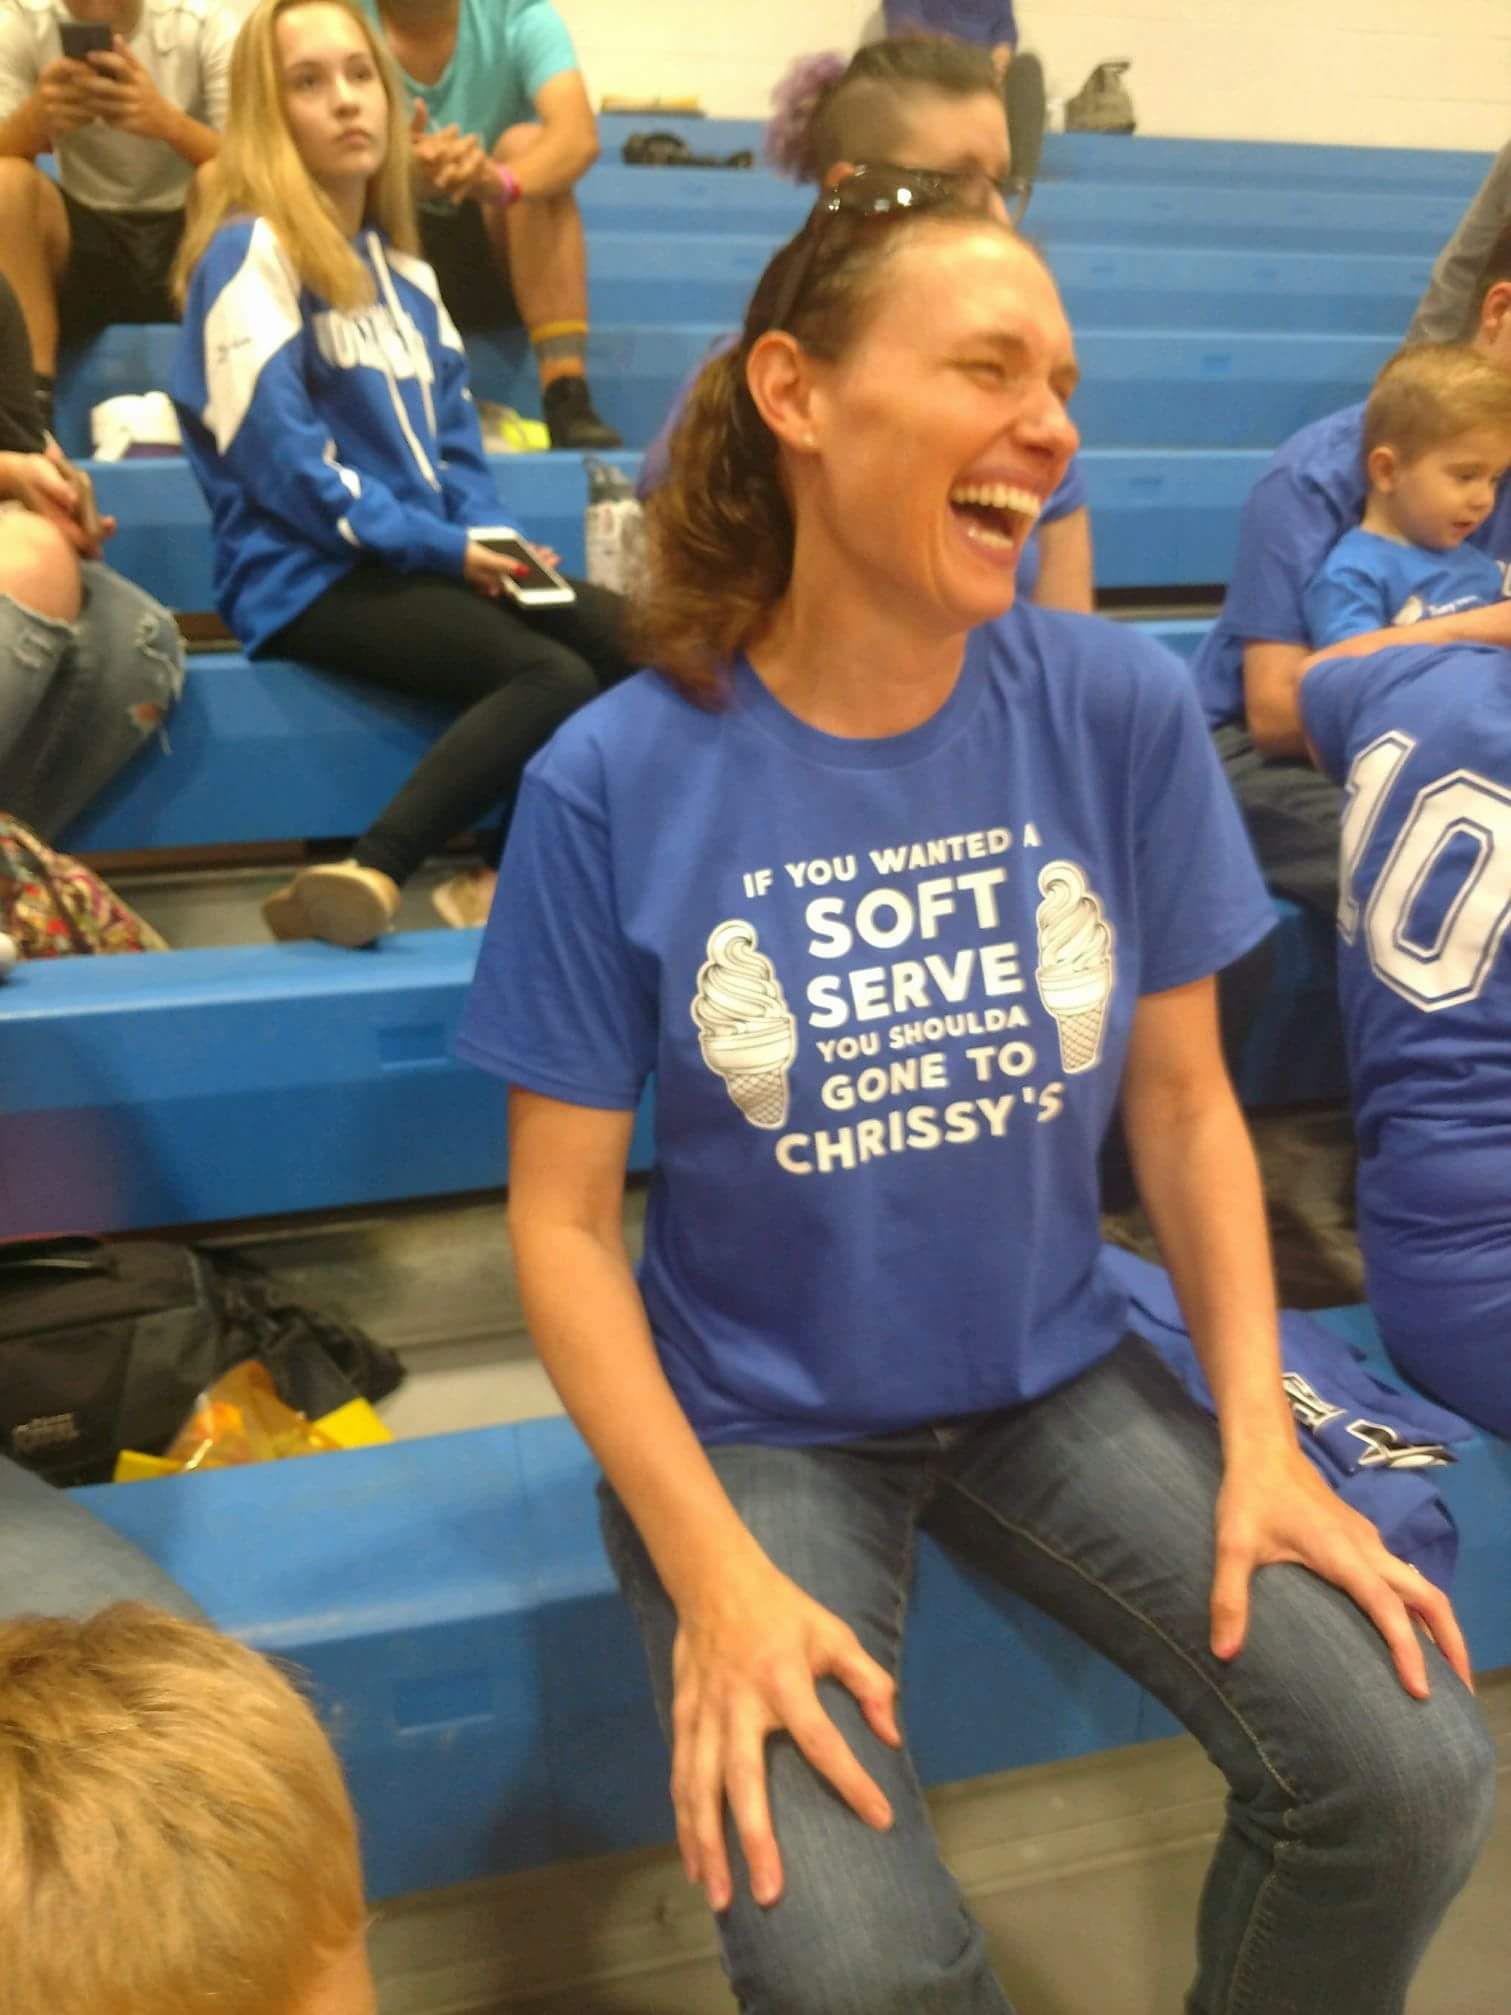 A mother laughing, sitting on stands, wearing a Chrissy's t-shirt